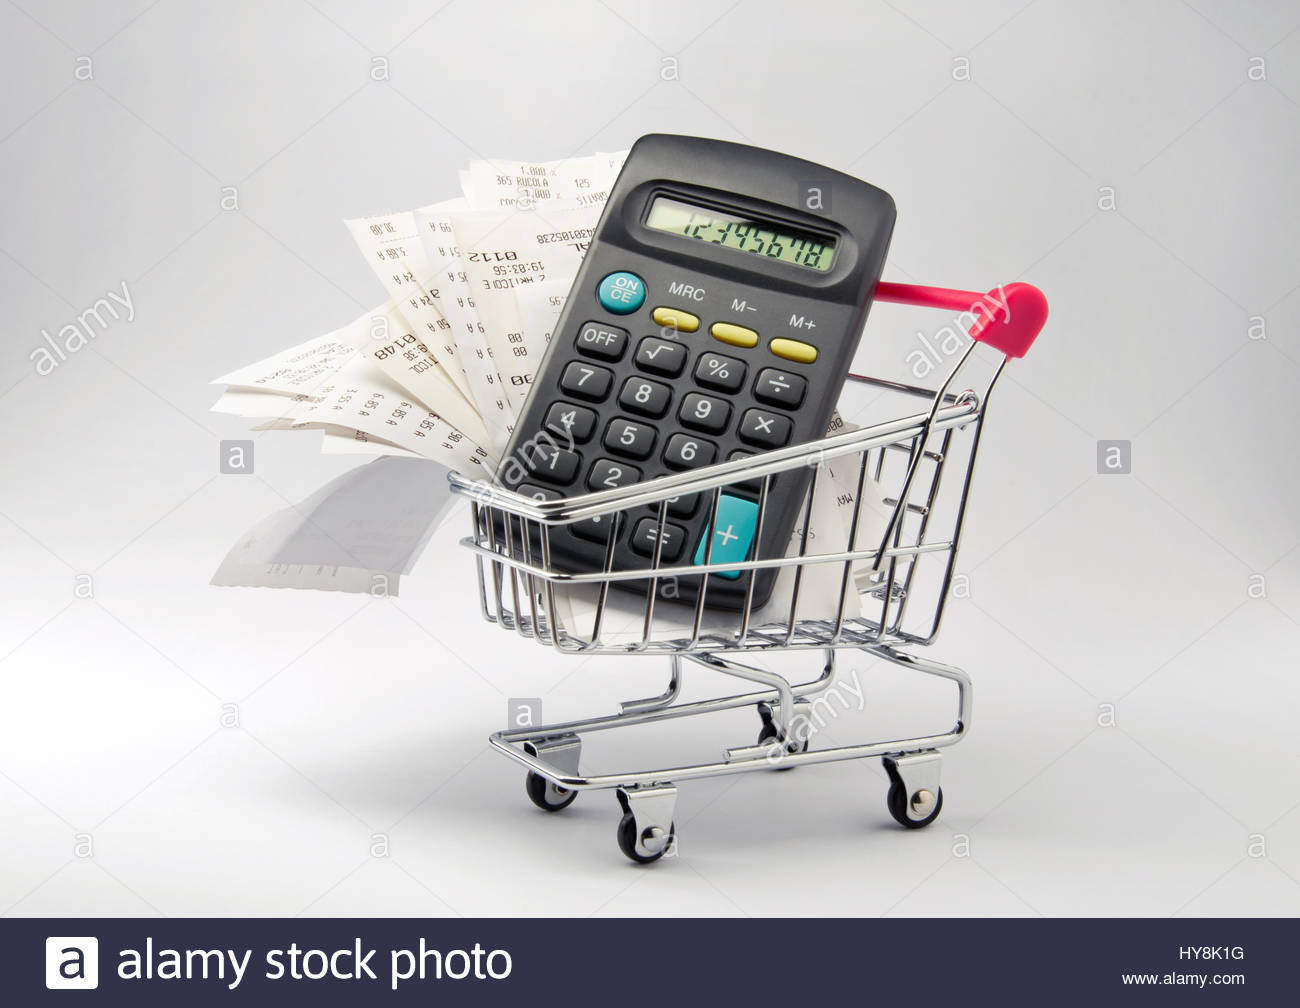 grocery list calculator stock photos grocery list calculator stock